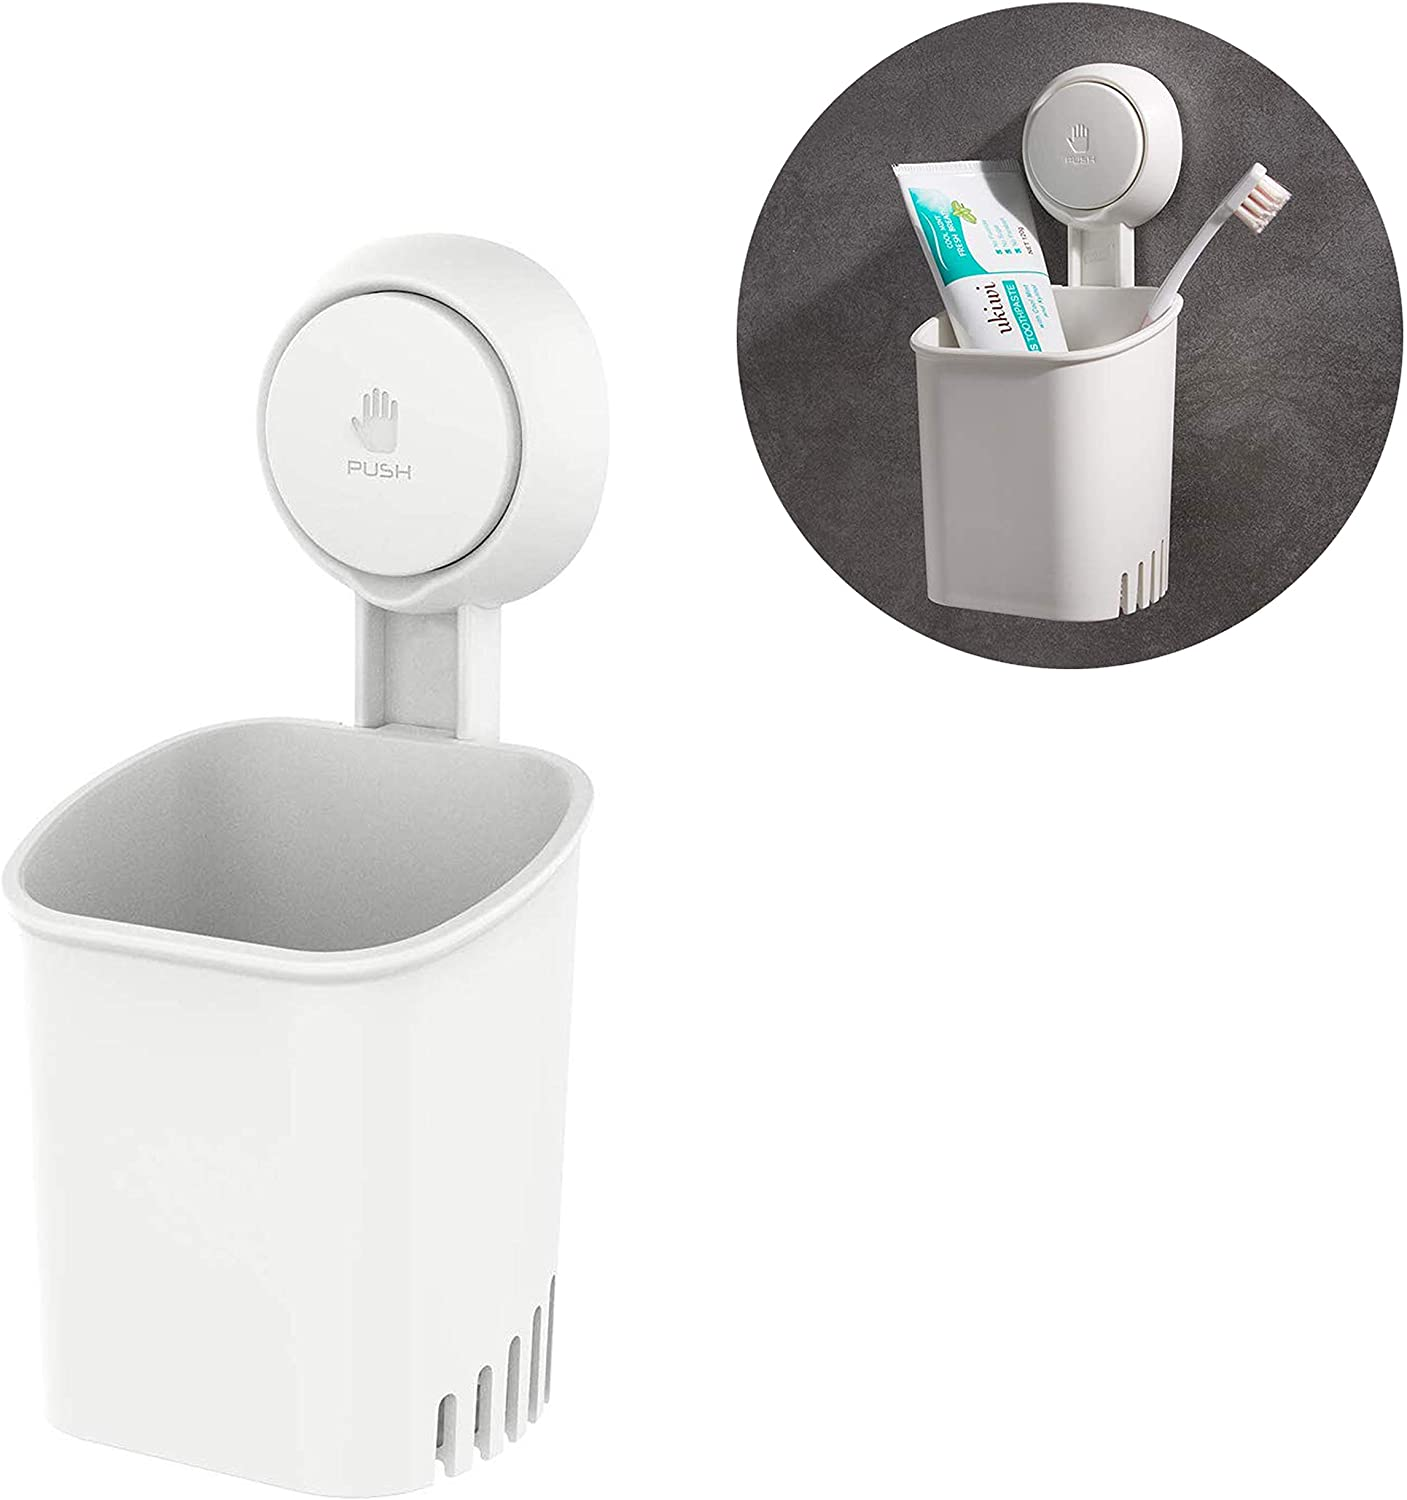 Aseem Suction Cup Toothbrush Holder Wall Mounted, Power Lock Bathroom Shower Organiser for Electric Toothbrushes, Toothpaste, Shaver, Razor and Makeup Brush, No Drill or Nail Needed - White